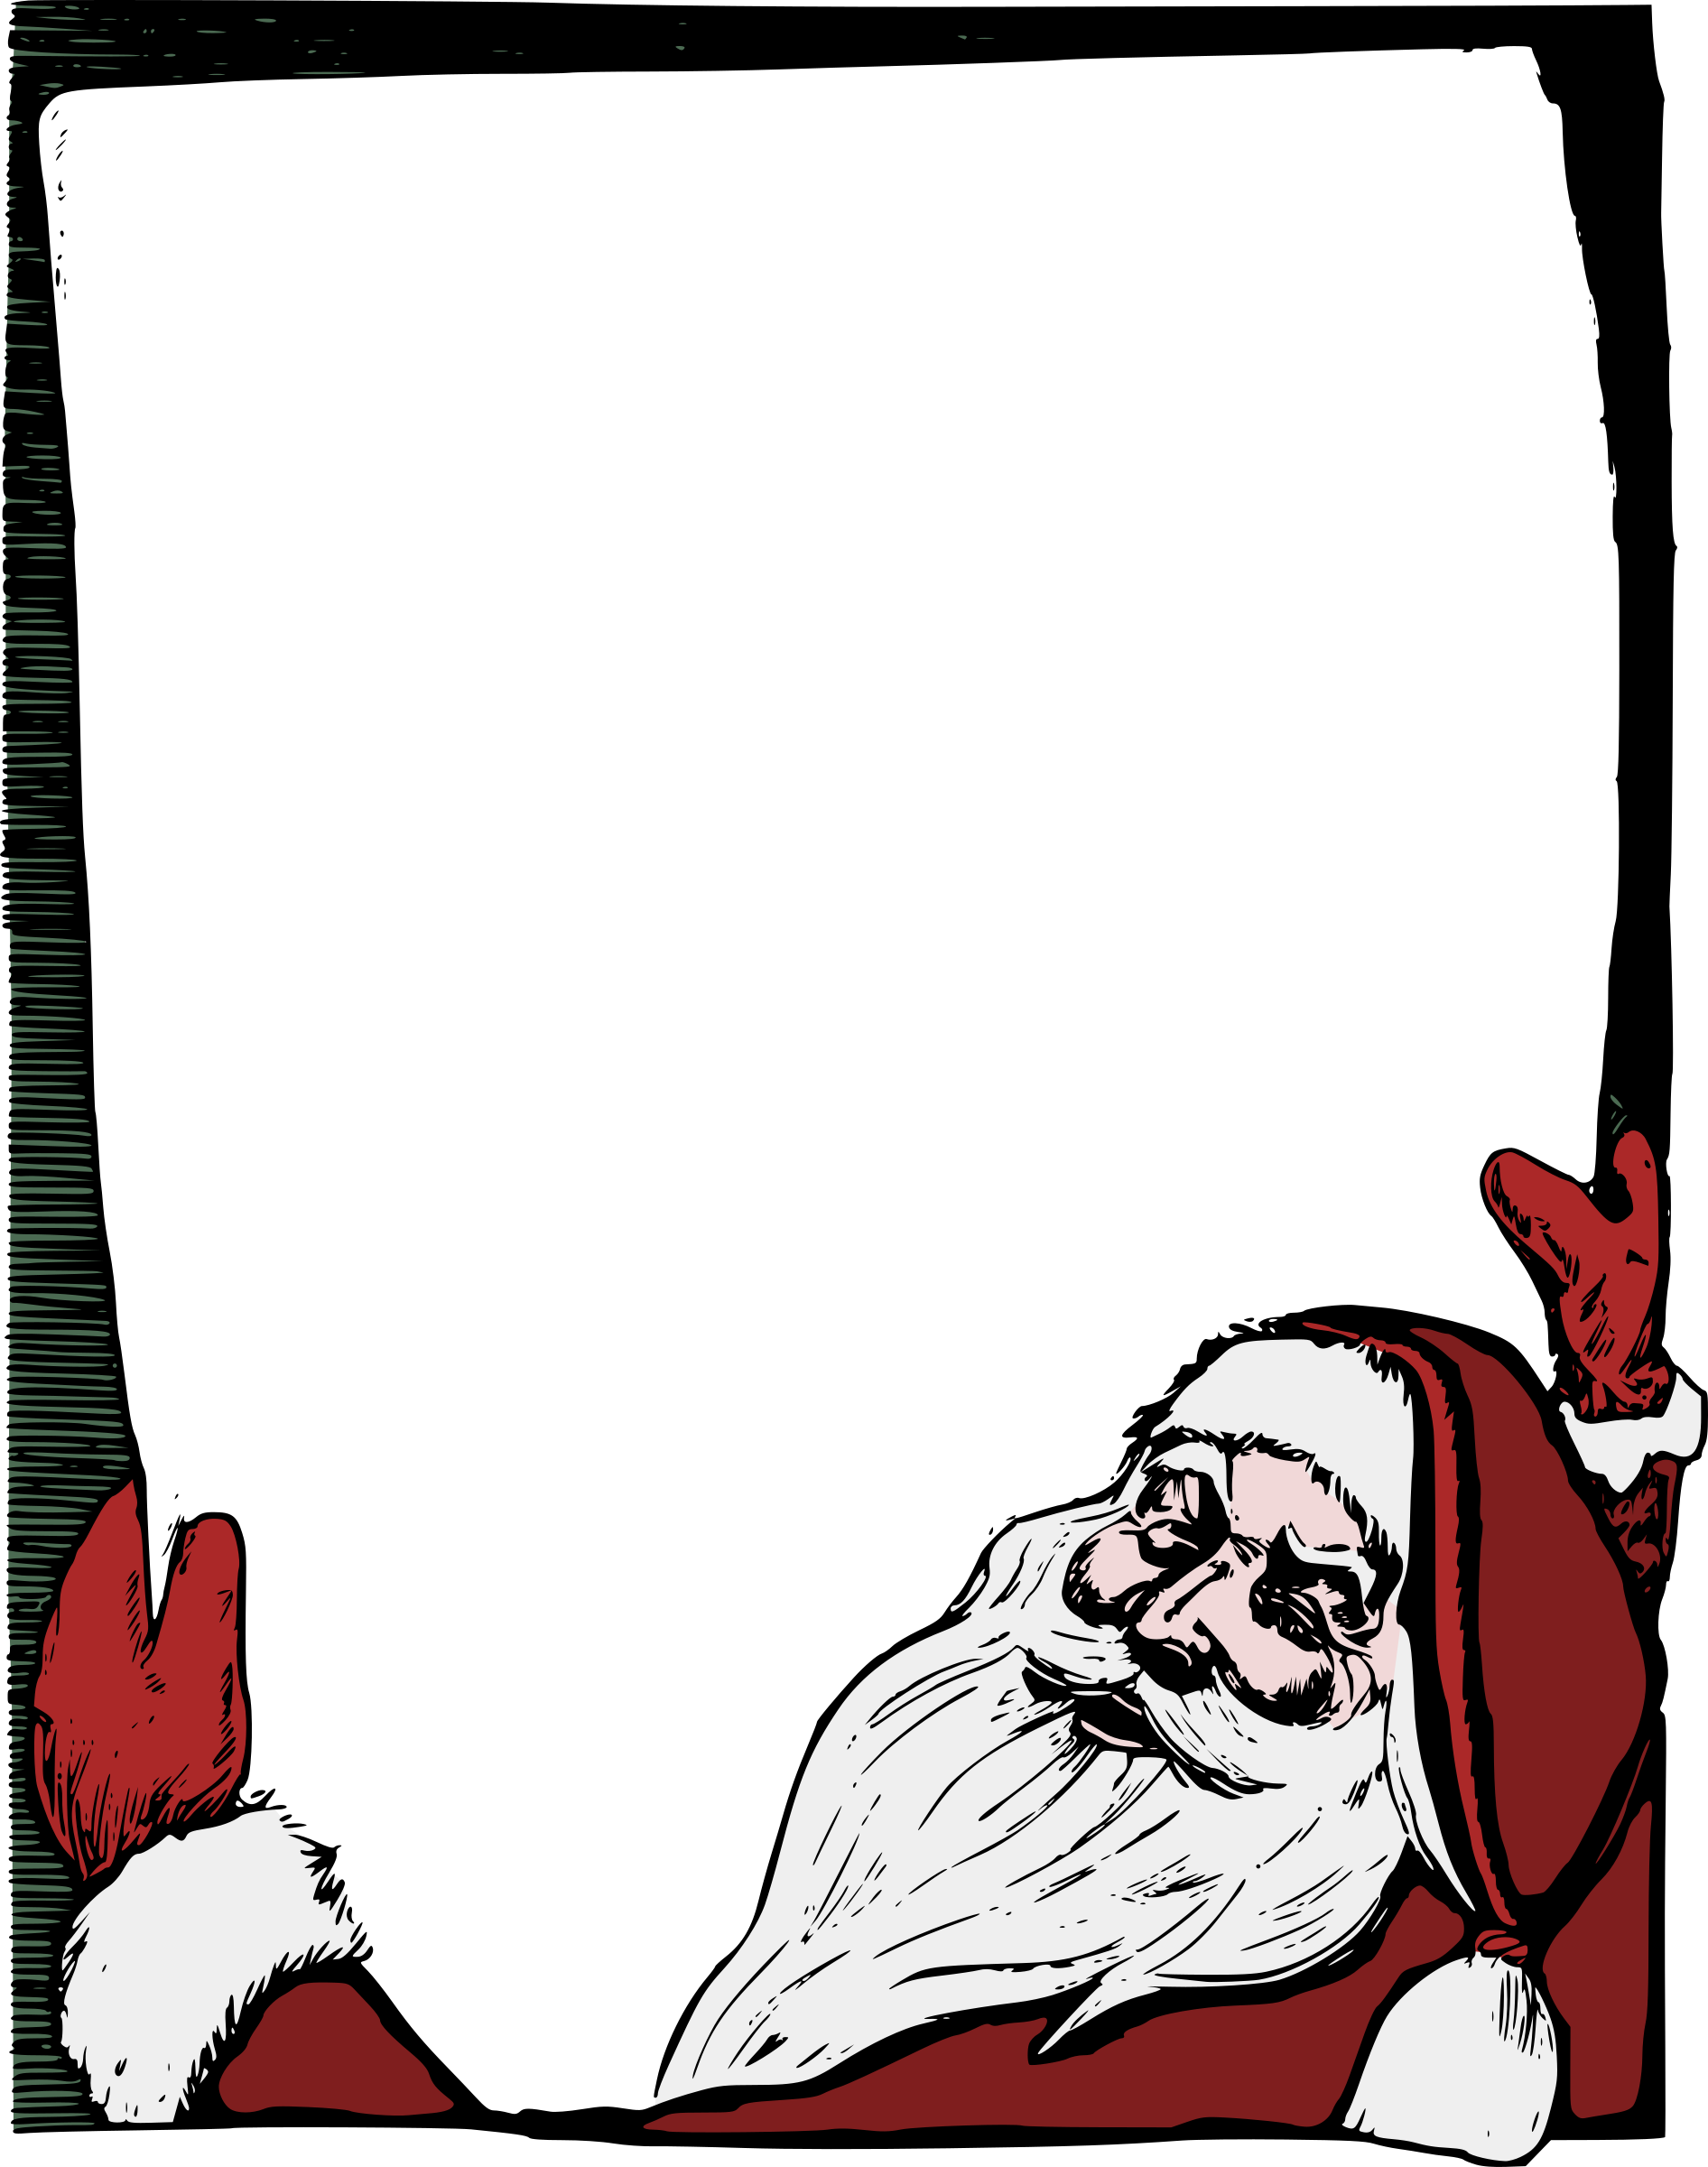 Santa colour big image. Holiday clipart picture frame